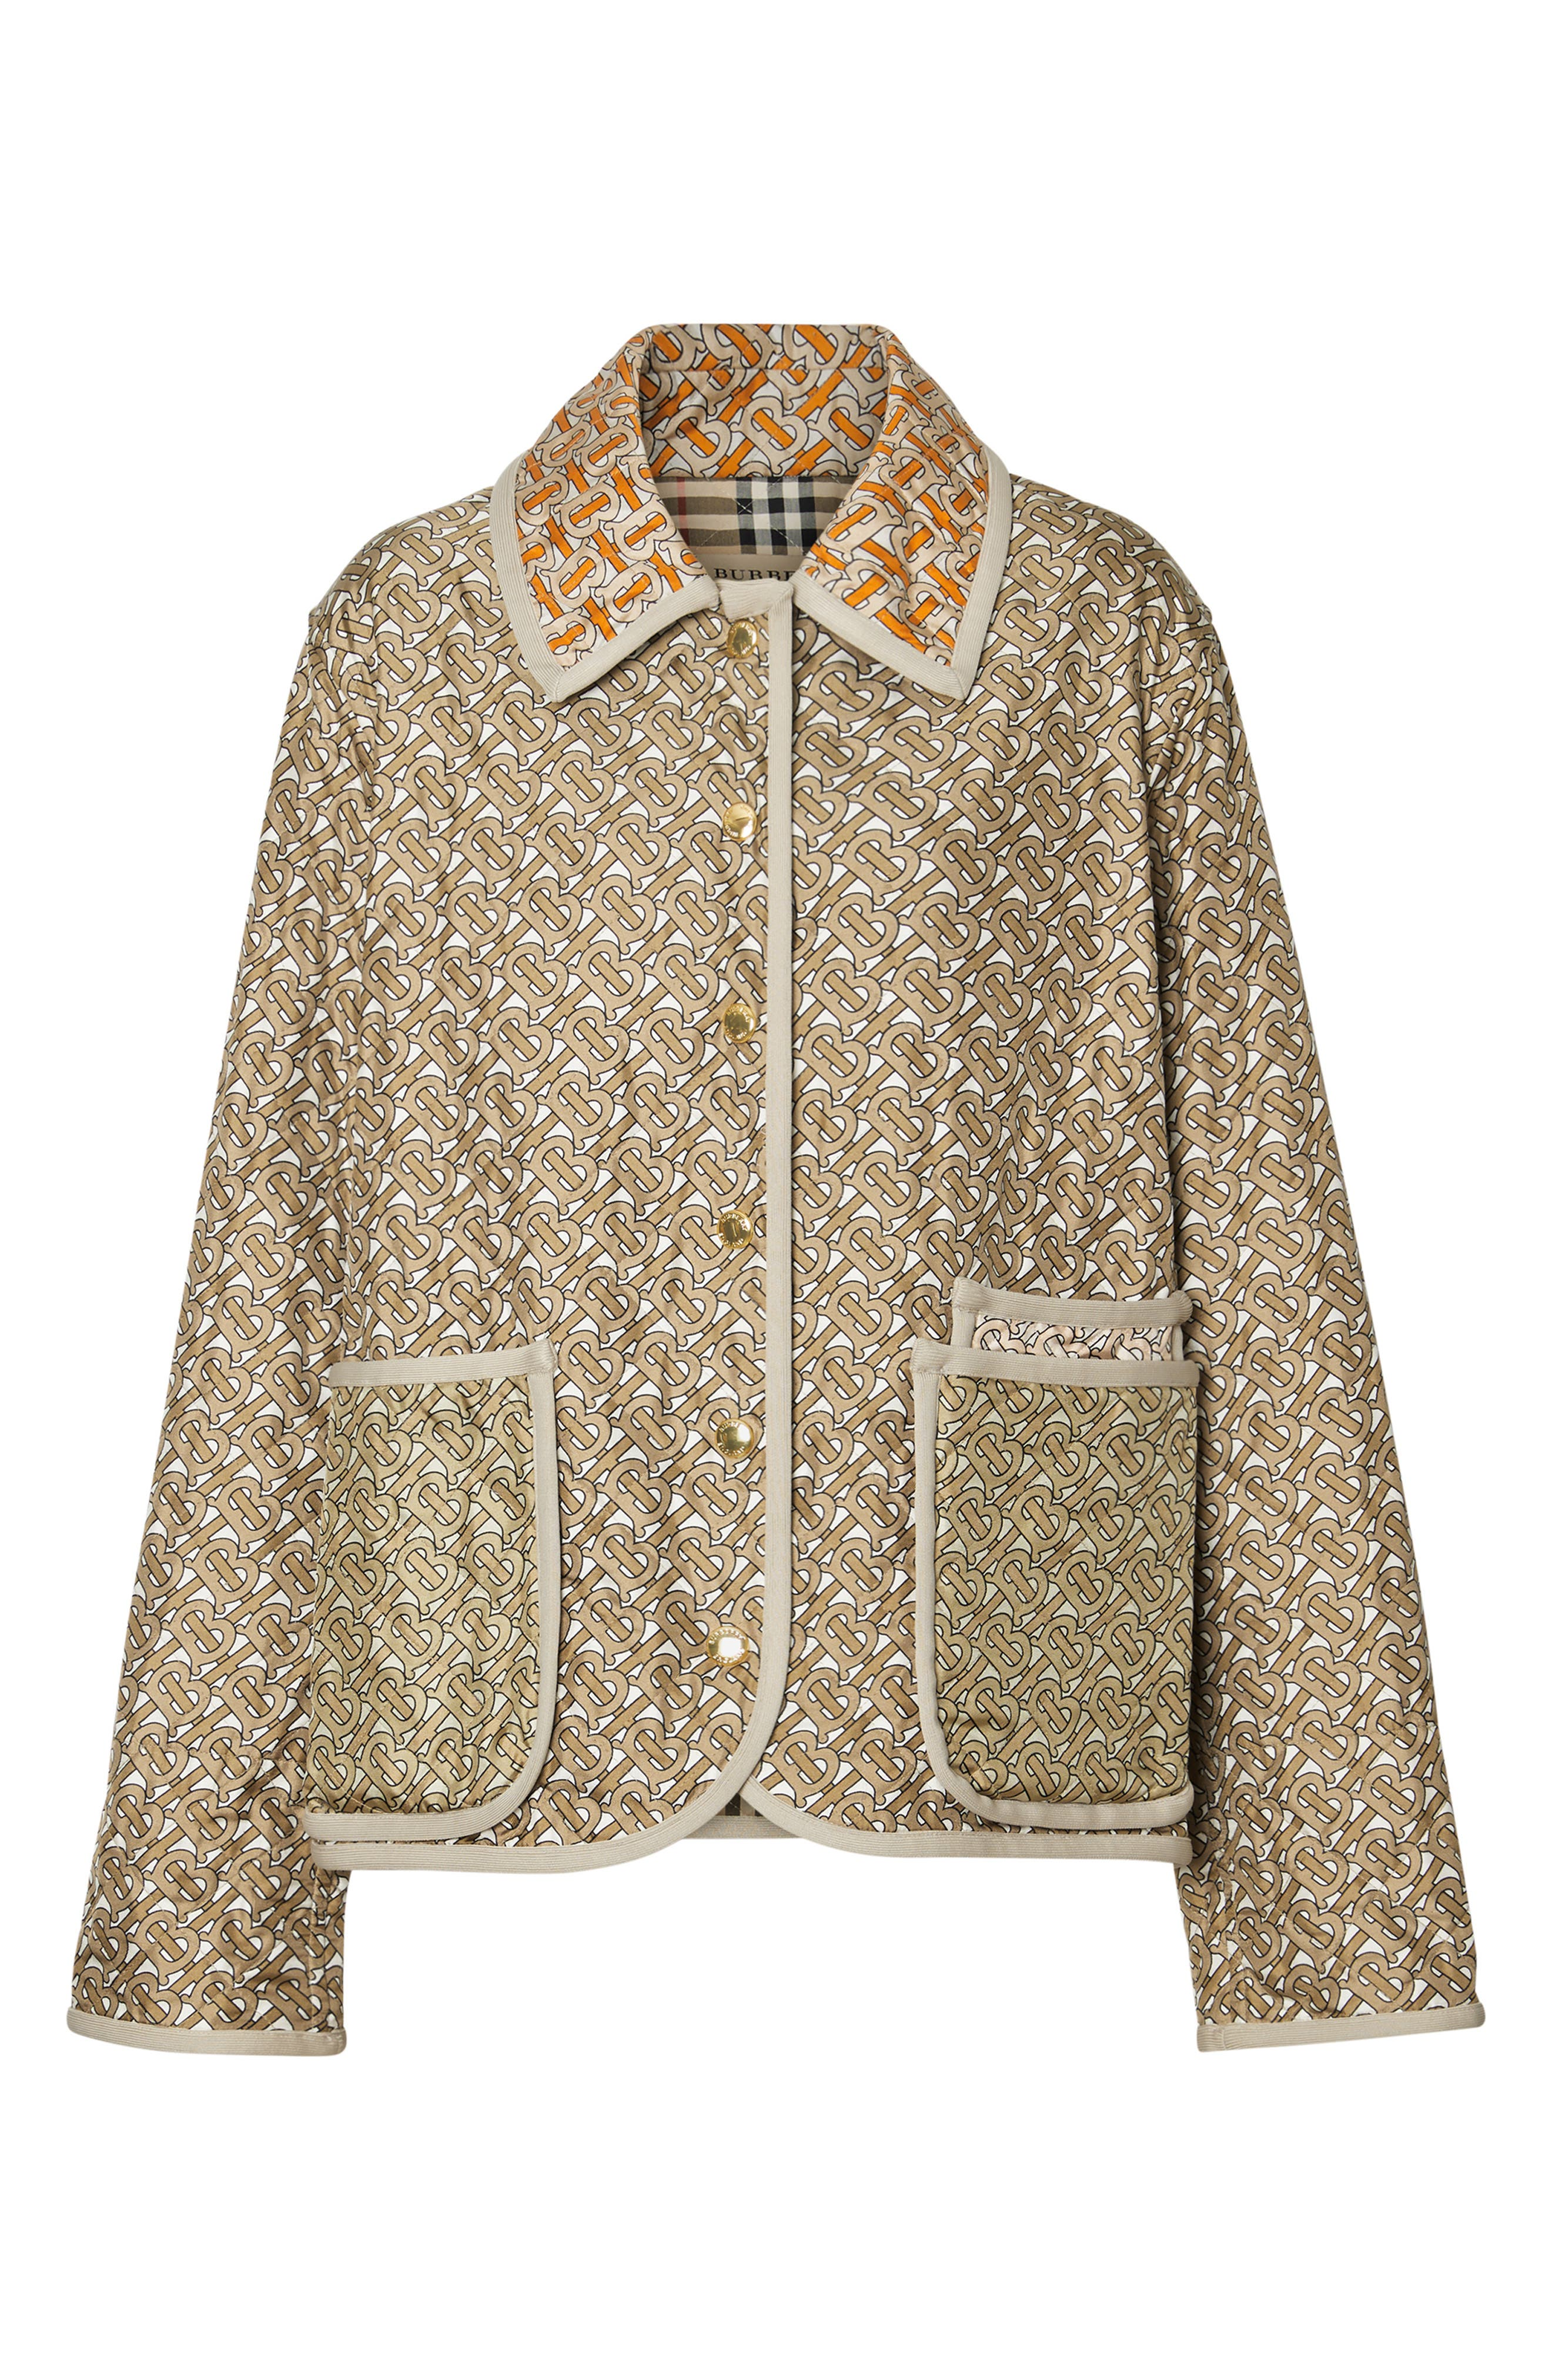 BURBERRY, Monogram Logo Print Quilted Silk Jacket, Alternate thumbnail 5, color, ARCHIVE BEIGE